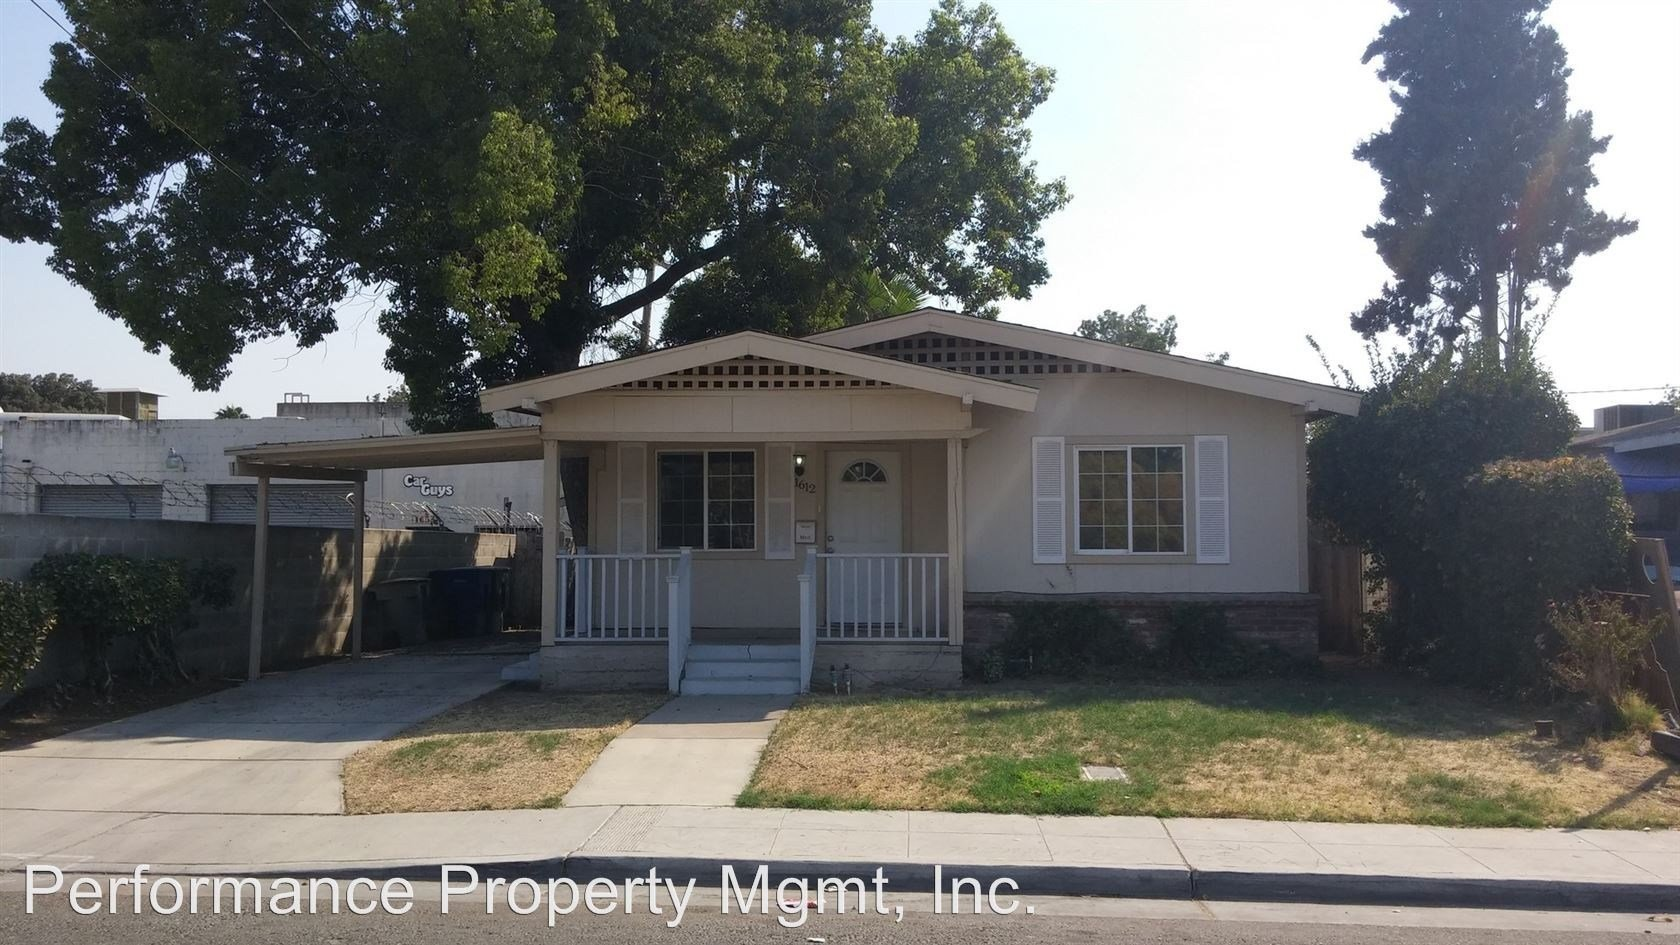 Best 1612 E Home Ave Fresno Ca 93728 2 Bedroom Apartment For Rent Padmapper With Pictures